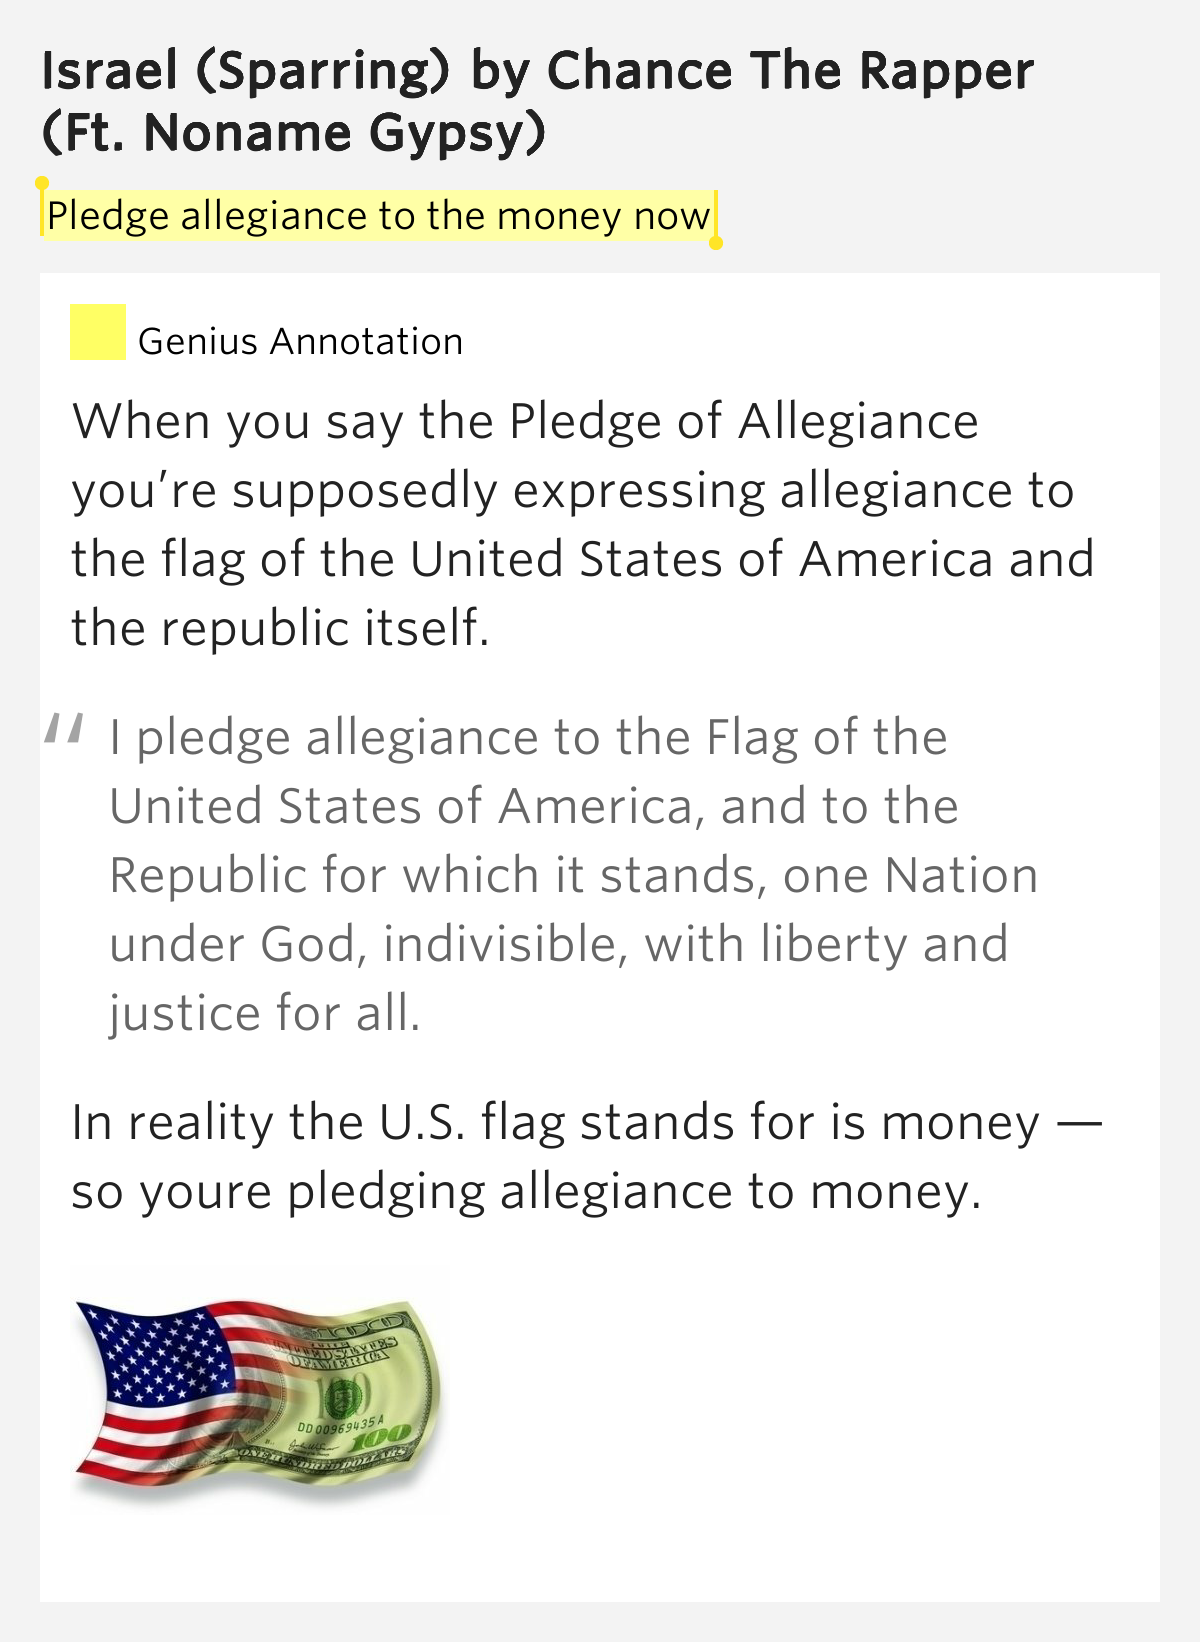 a description of the pledge of allegiance Pledge of allegiance to the state flag the pledge of allegiance to the texas state flag is honor the texas flag i pledge allegiance to thee, texas, one state under god, one and indivisible.